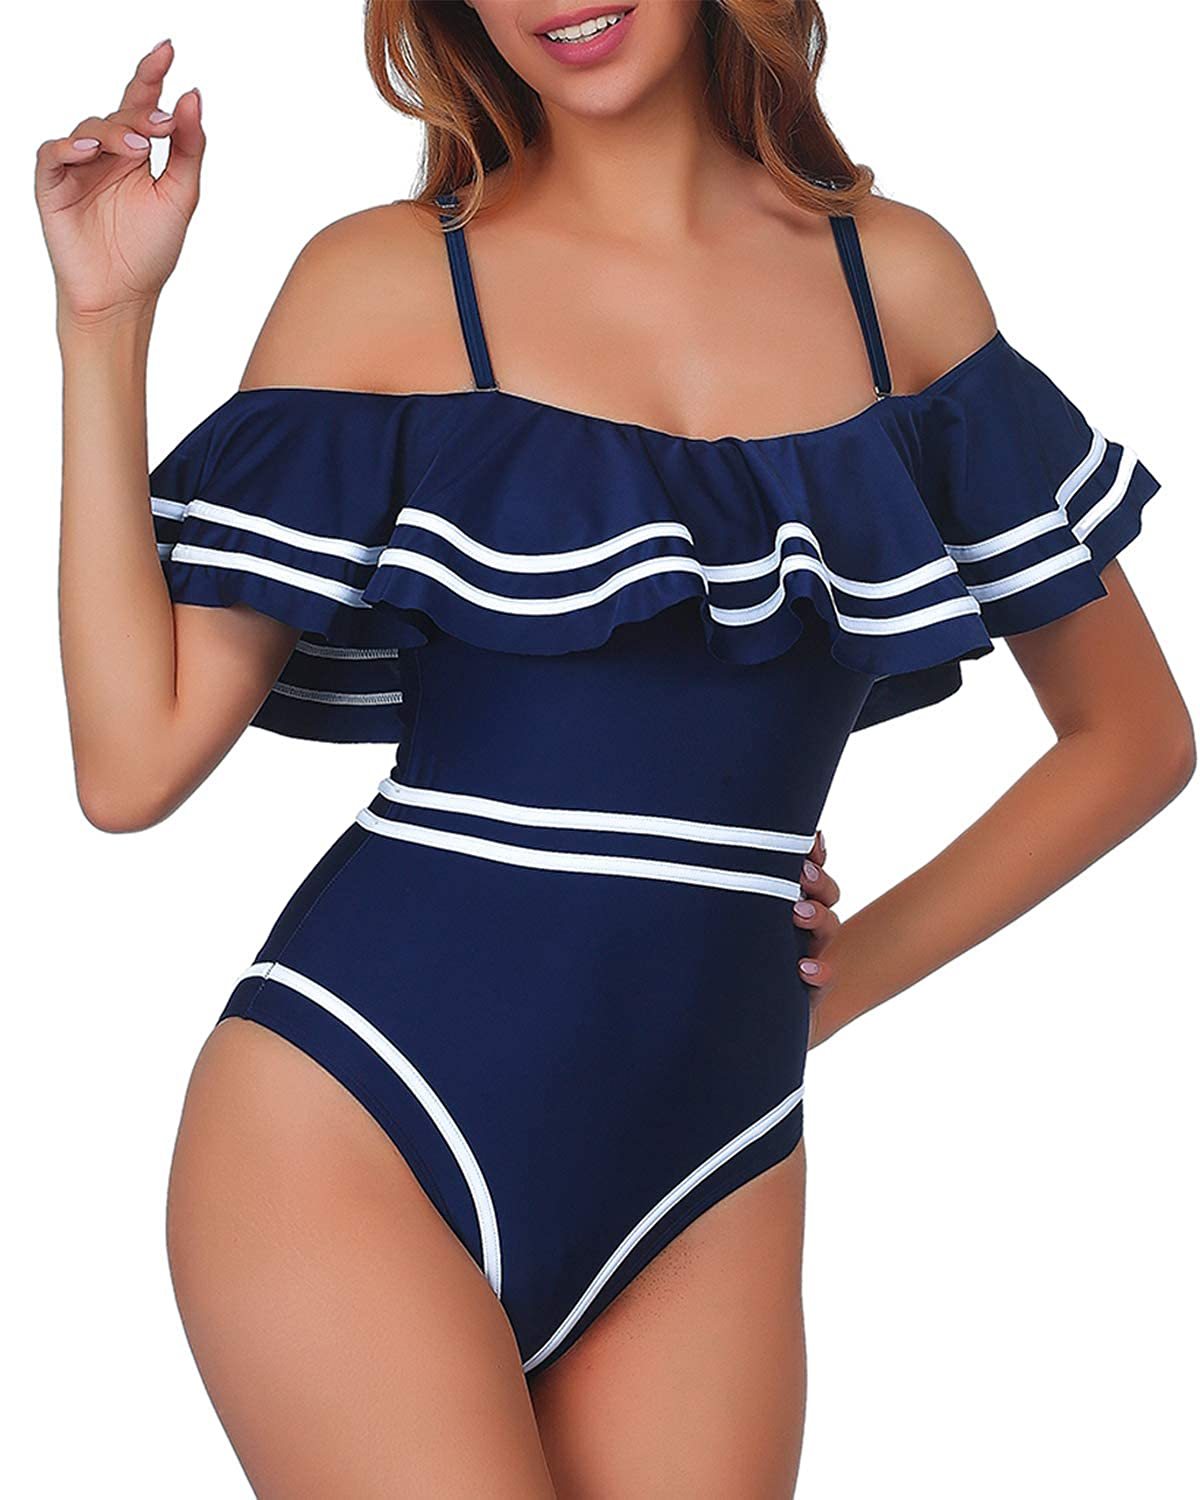 60s Mod Clothing Outfit Ideas Elegant Taste Women 1 Piece Vintage Navy Ruched Flounce Off Shoulder Swimwear High Waisted Swimsuit Monokini $26.99 AT vintagedancer.com